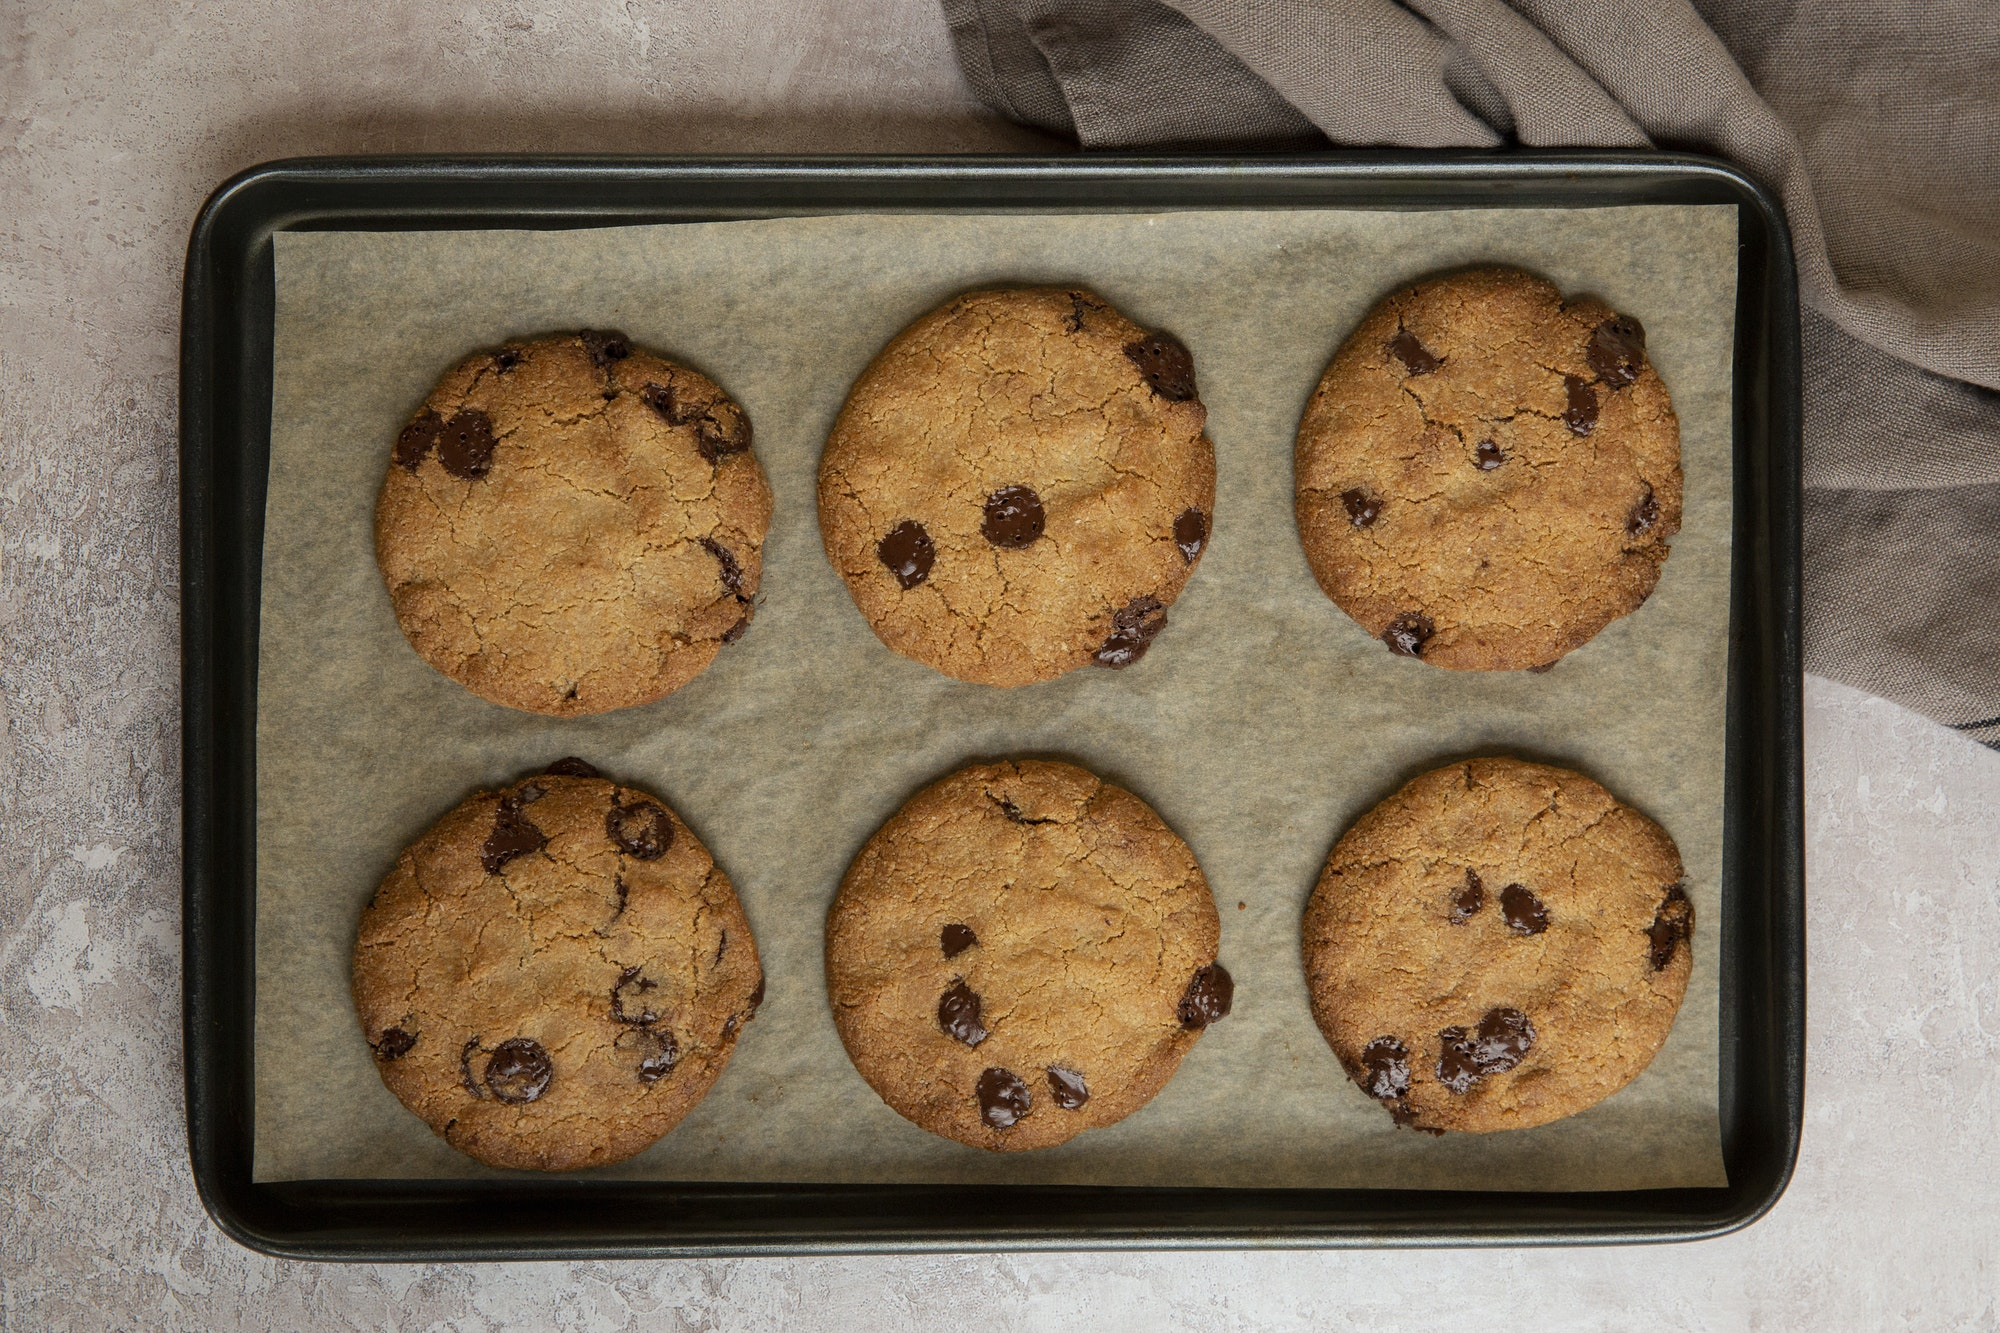 High angle close up of baking tray with freshly baked chocolate chip cookies.